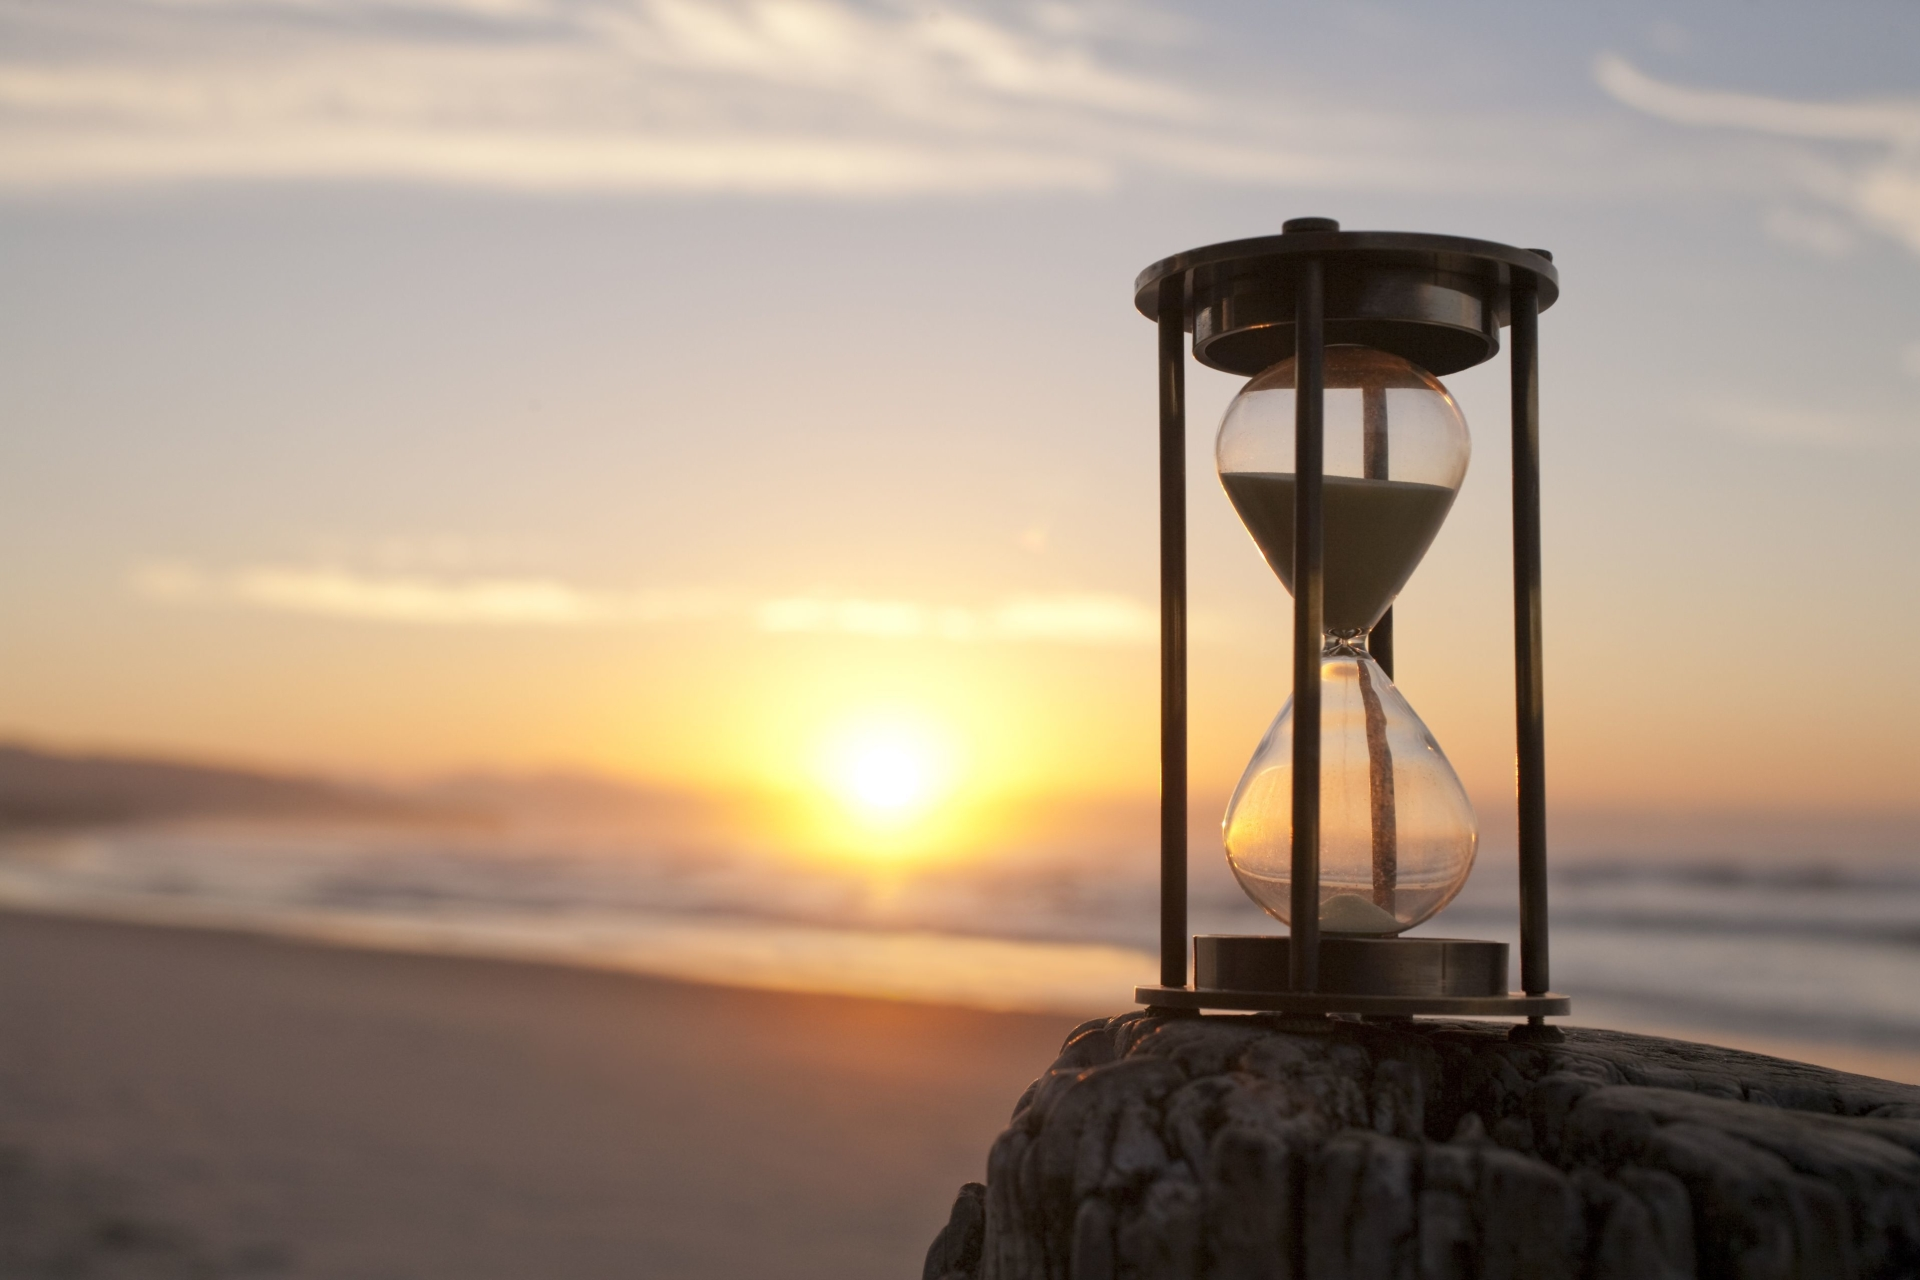 Rabbi Abraham Joshua Heschel: Kiddush and the Sanctification of Time